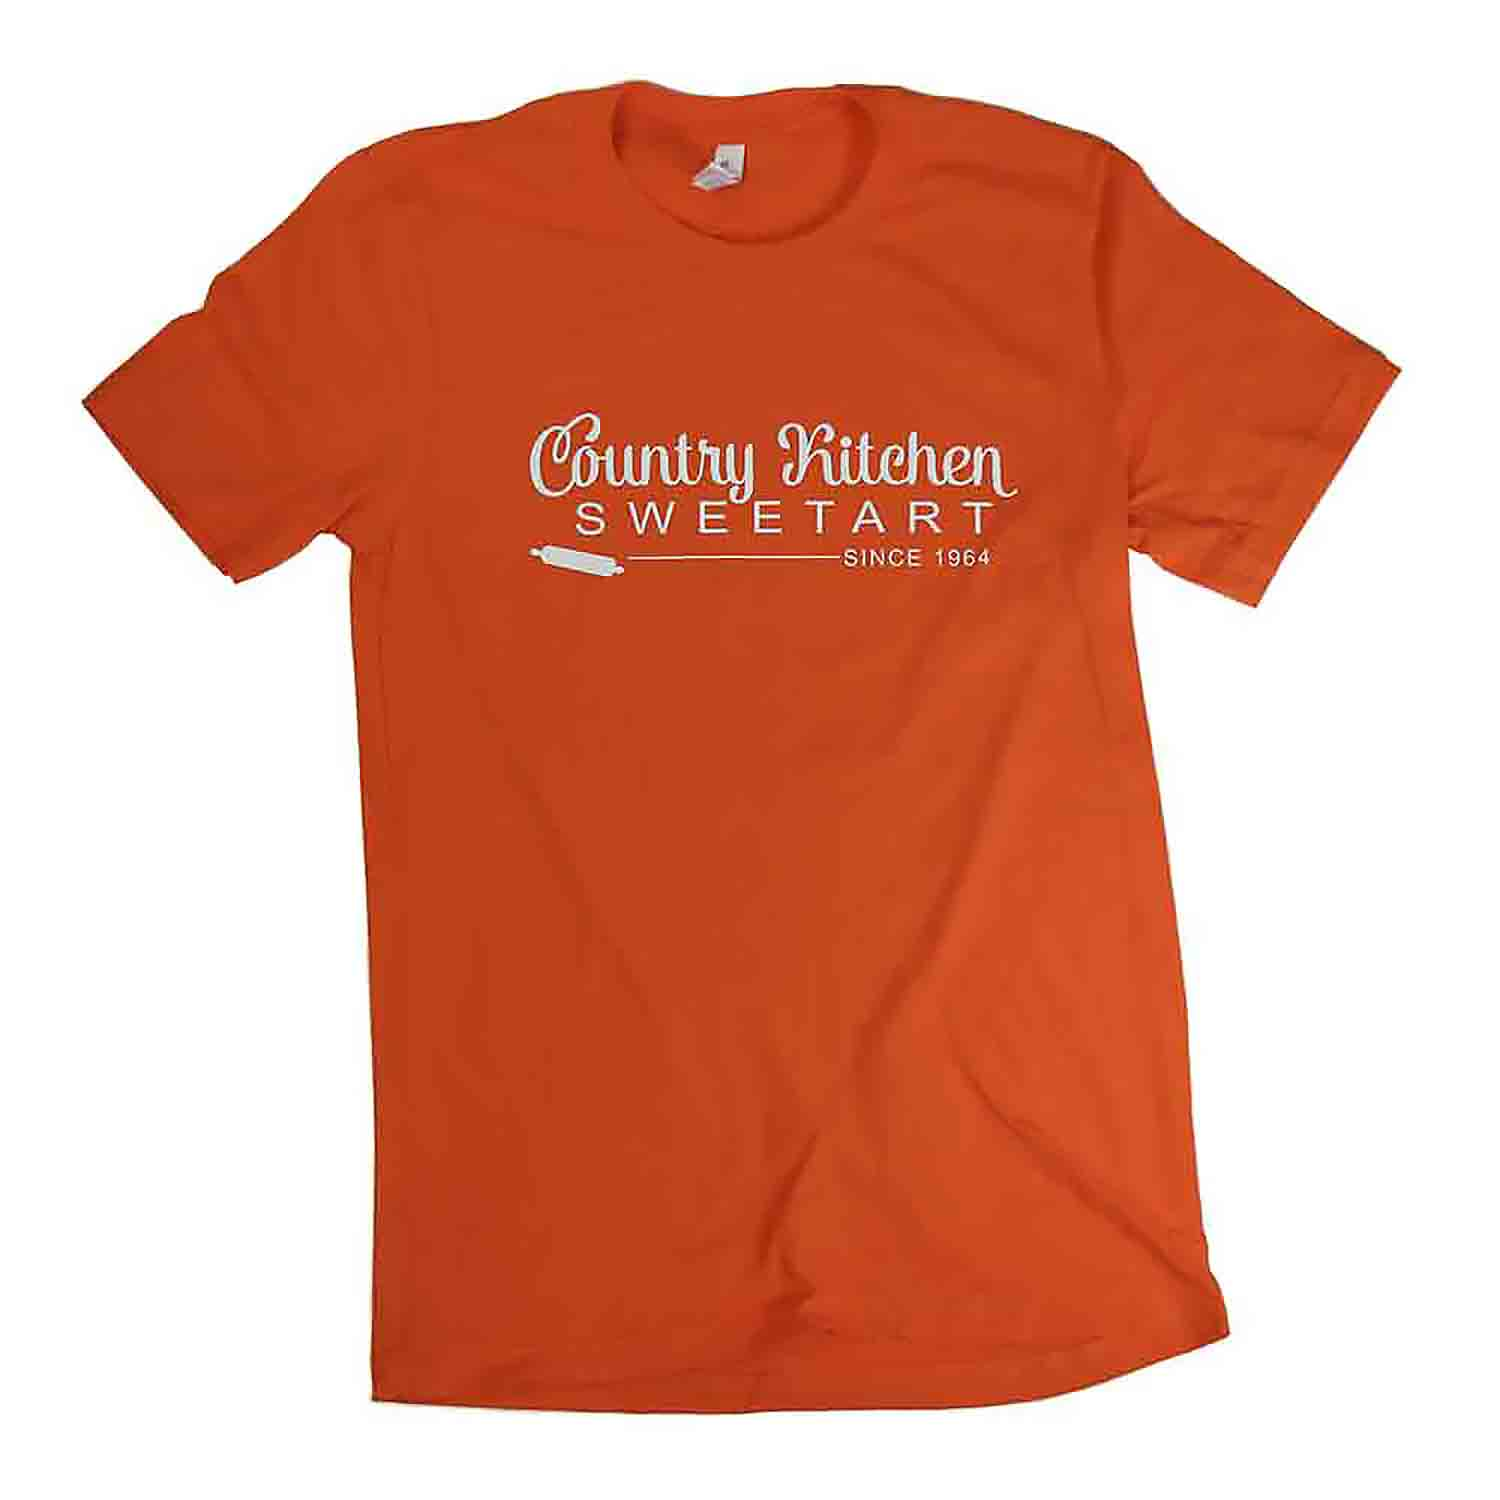 Orange Country Kitchen Sweetart T-Shirt - Small